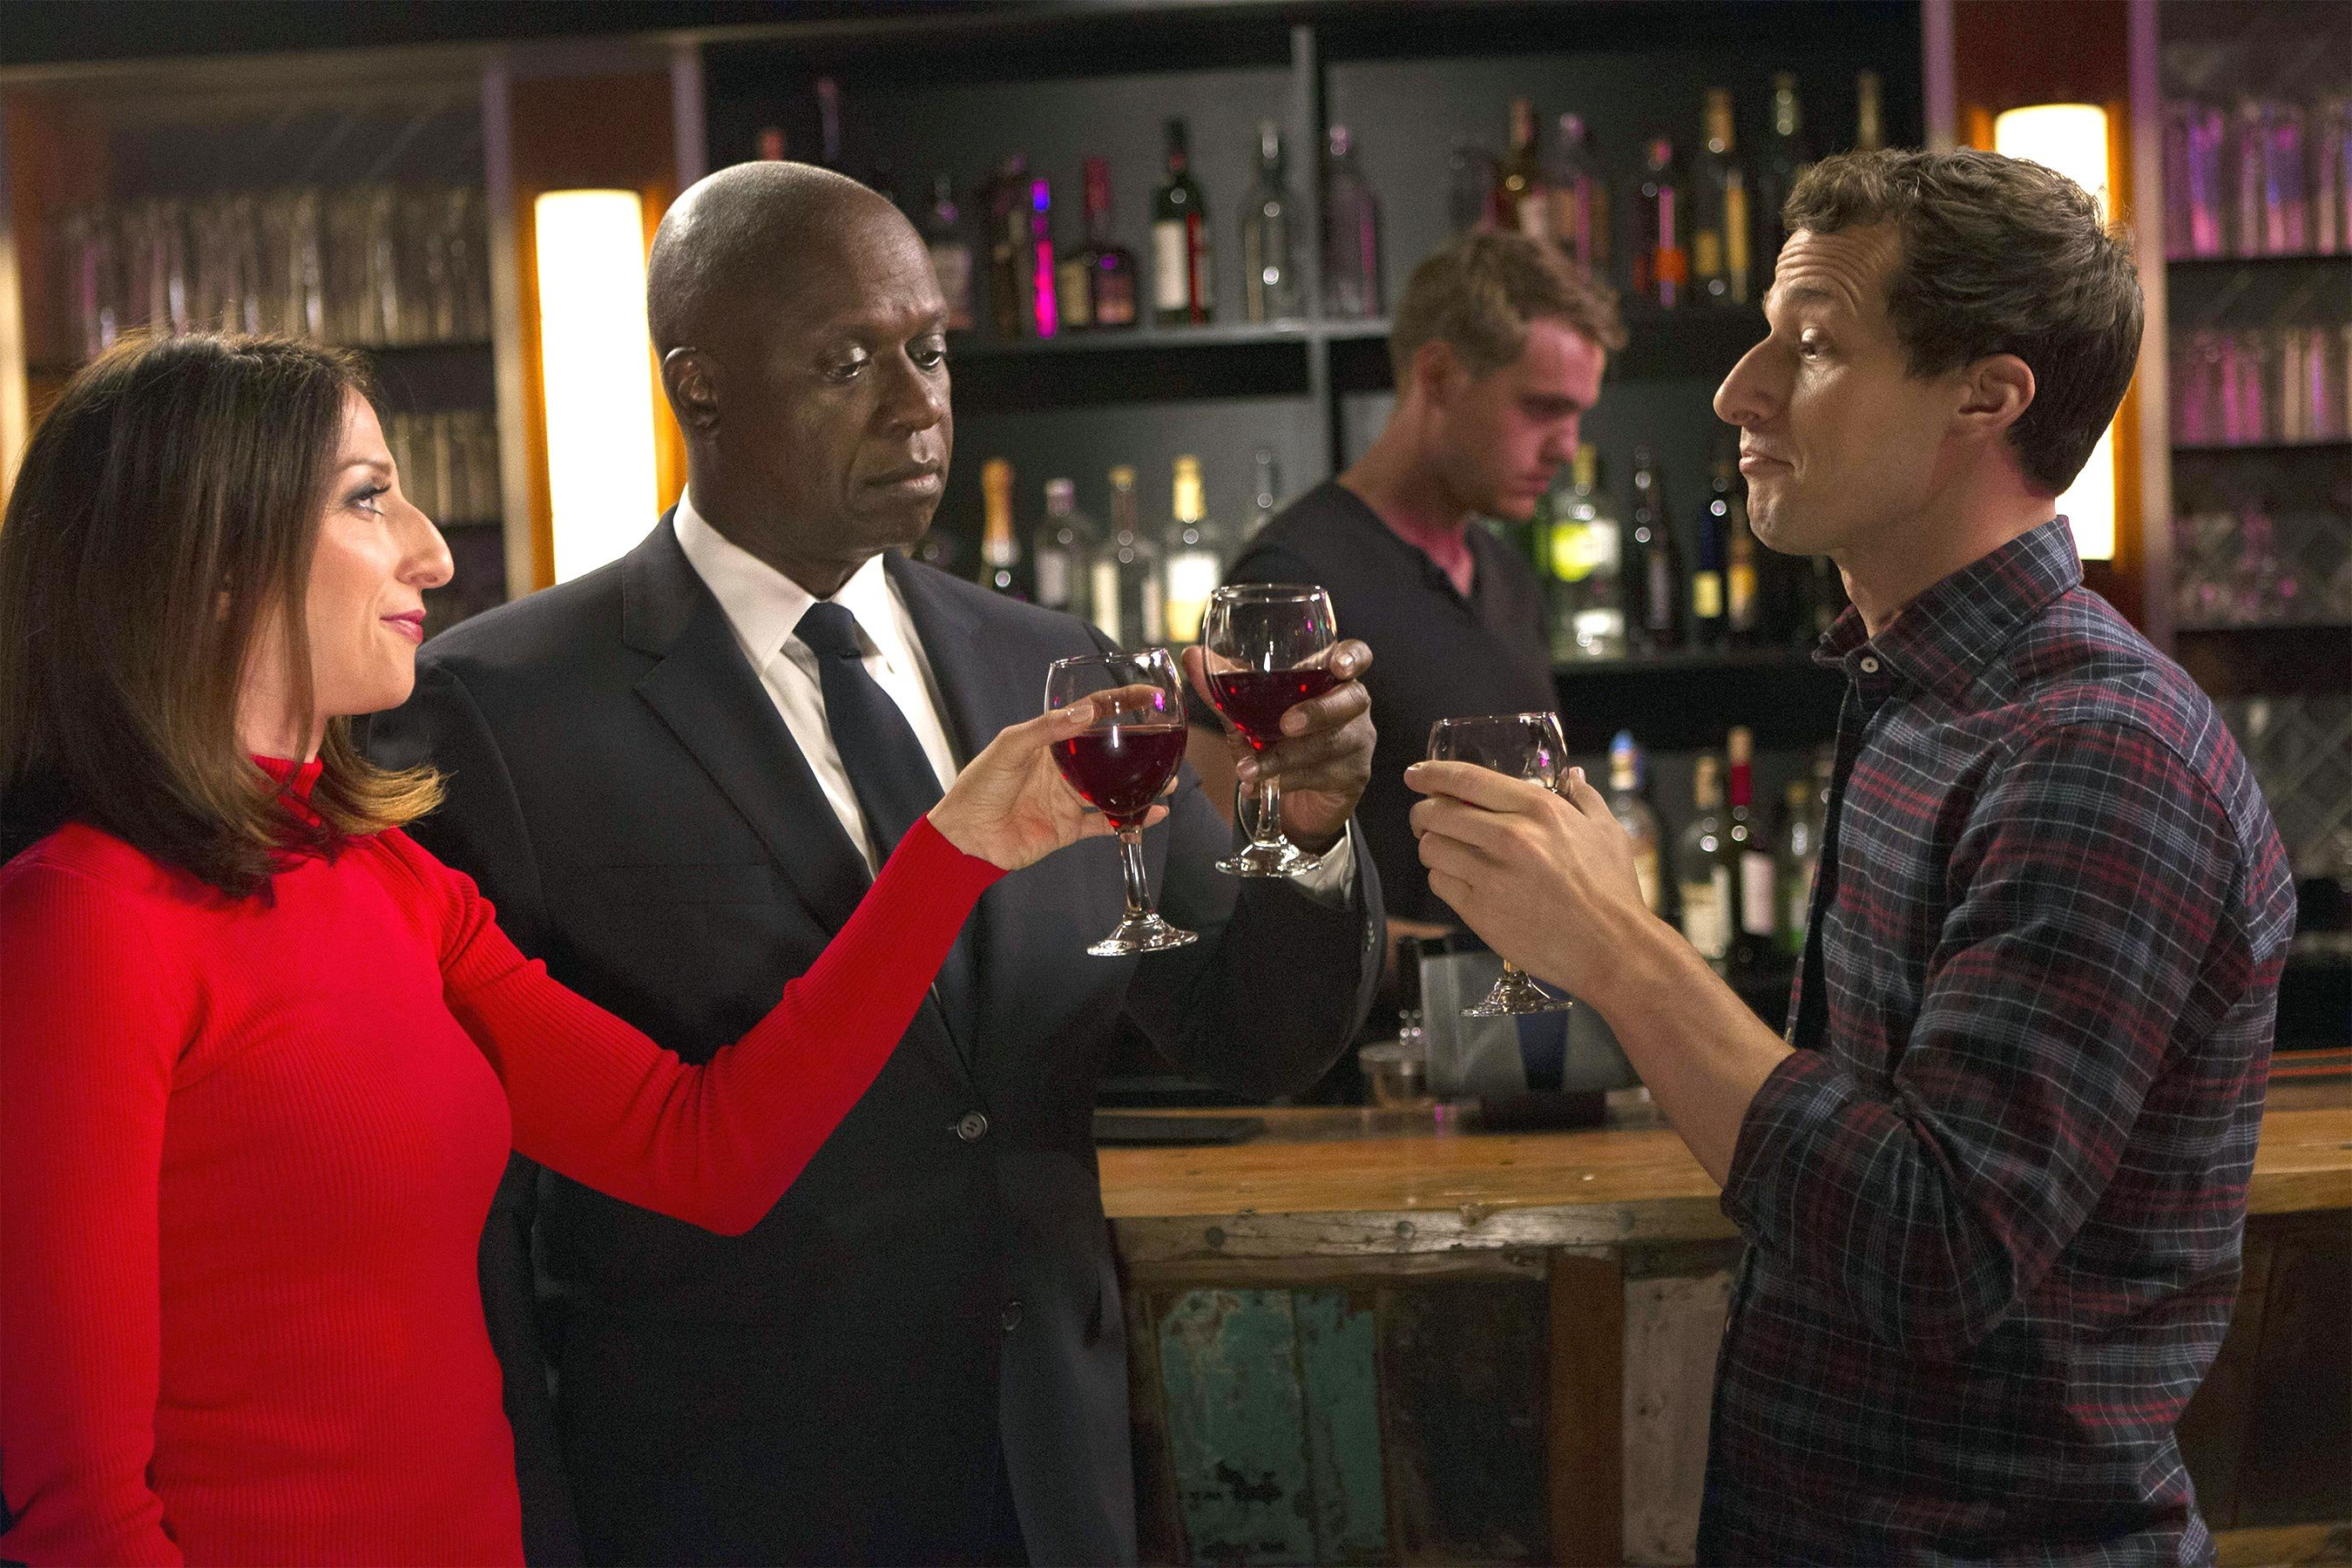 Here's when Brooklyn Nine-Nine season 6 will premiere on NBC